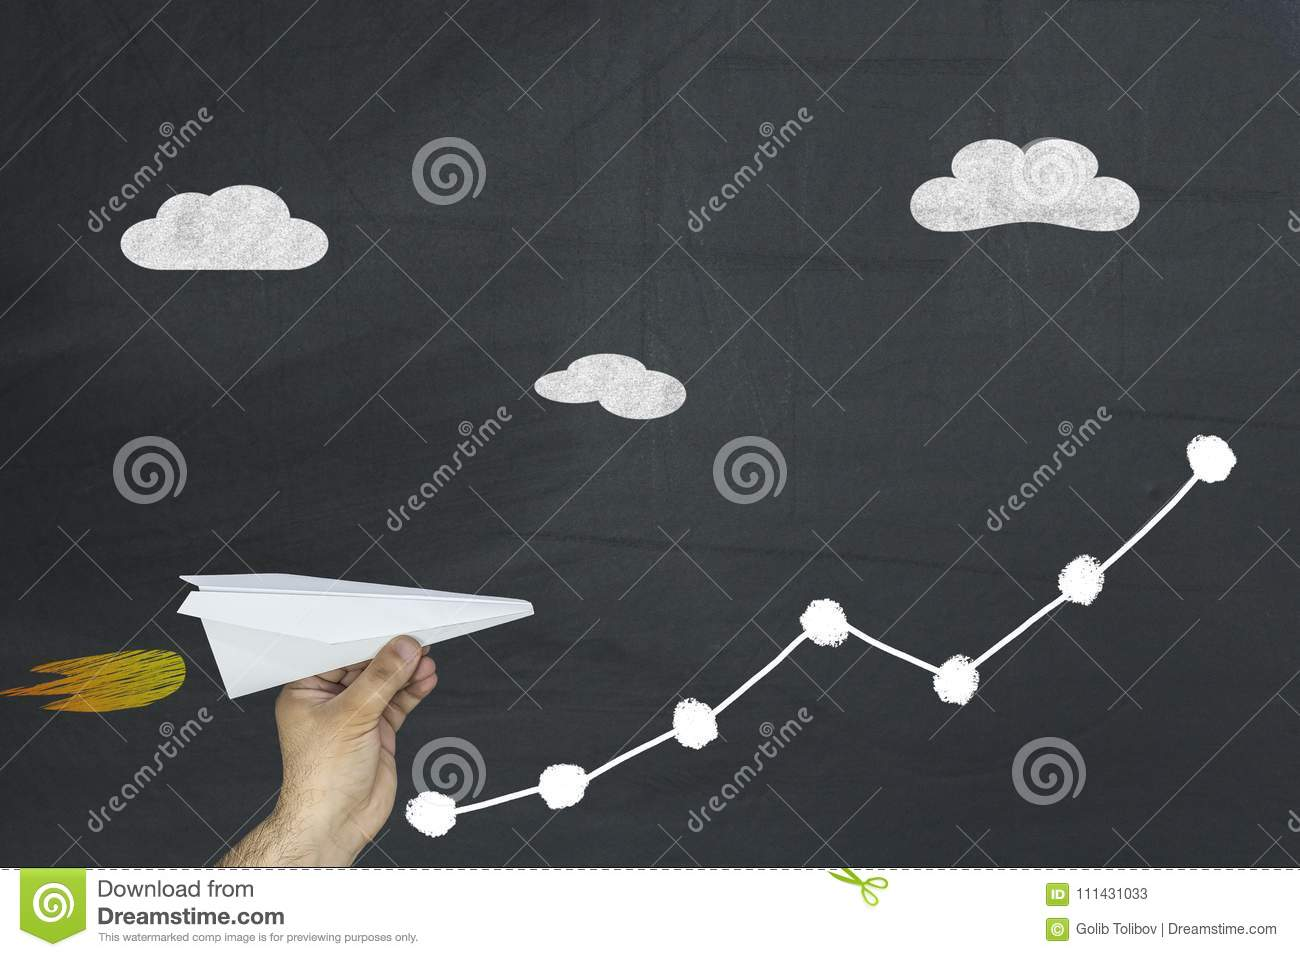 Man holding paper plane flying up on growing graph arrow chart on chalkboard. Business finance concept.